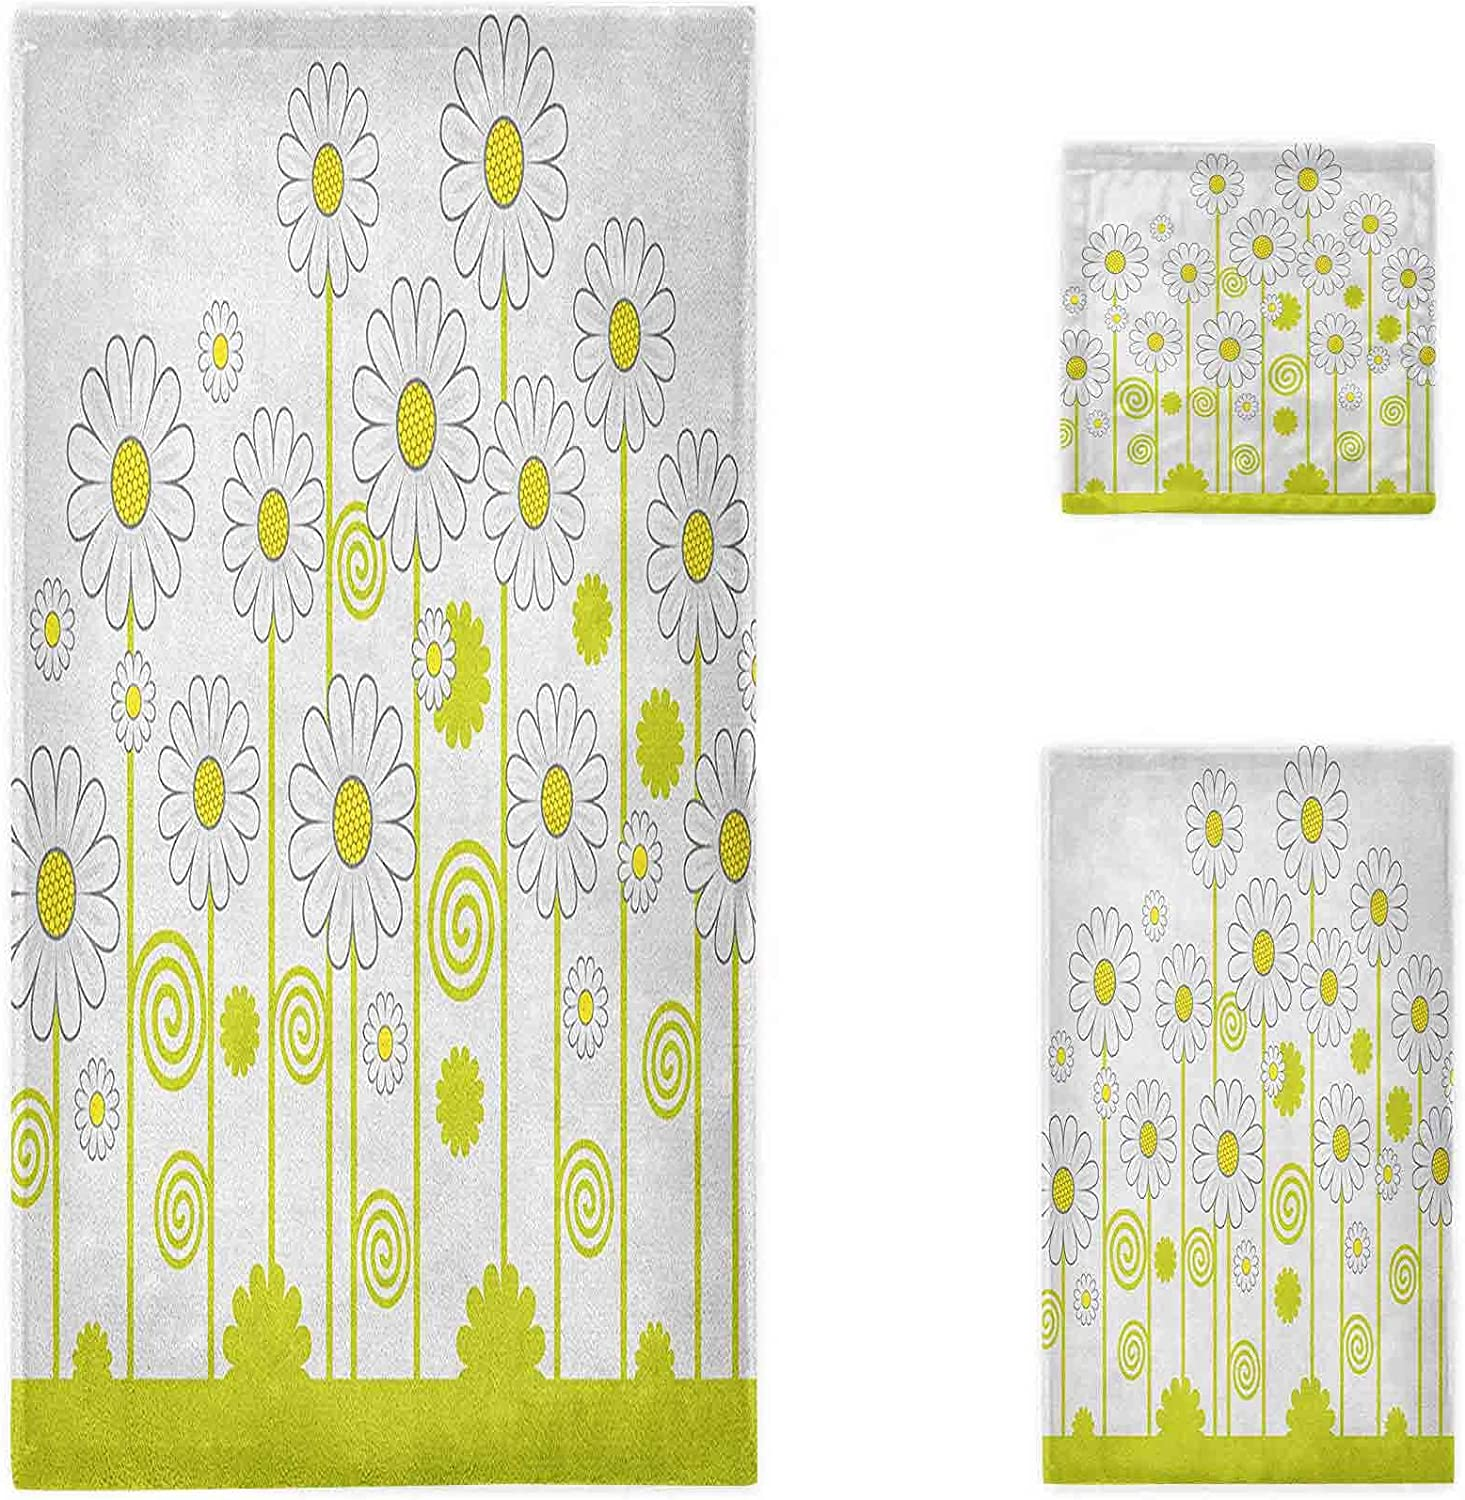 Floral Oversized Bath Towels Daily bargain sale Miami Mall Daisy Flowers with a in Day Sunny